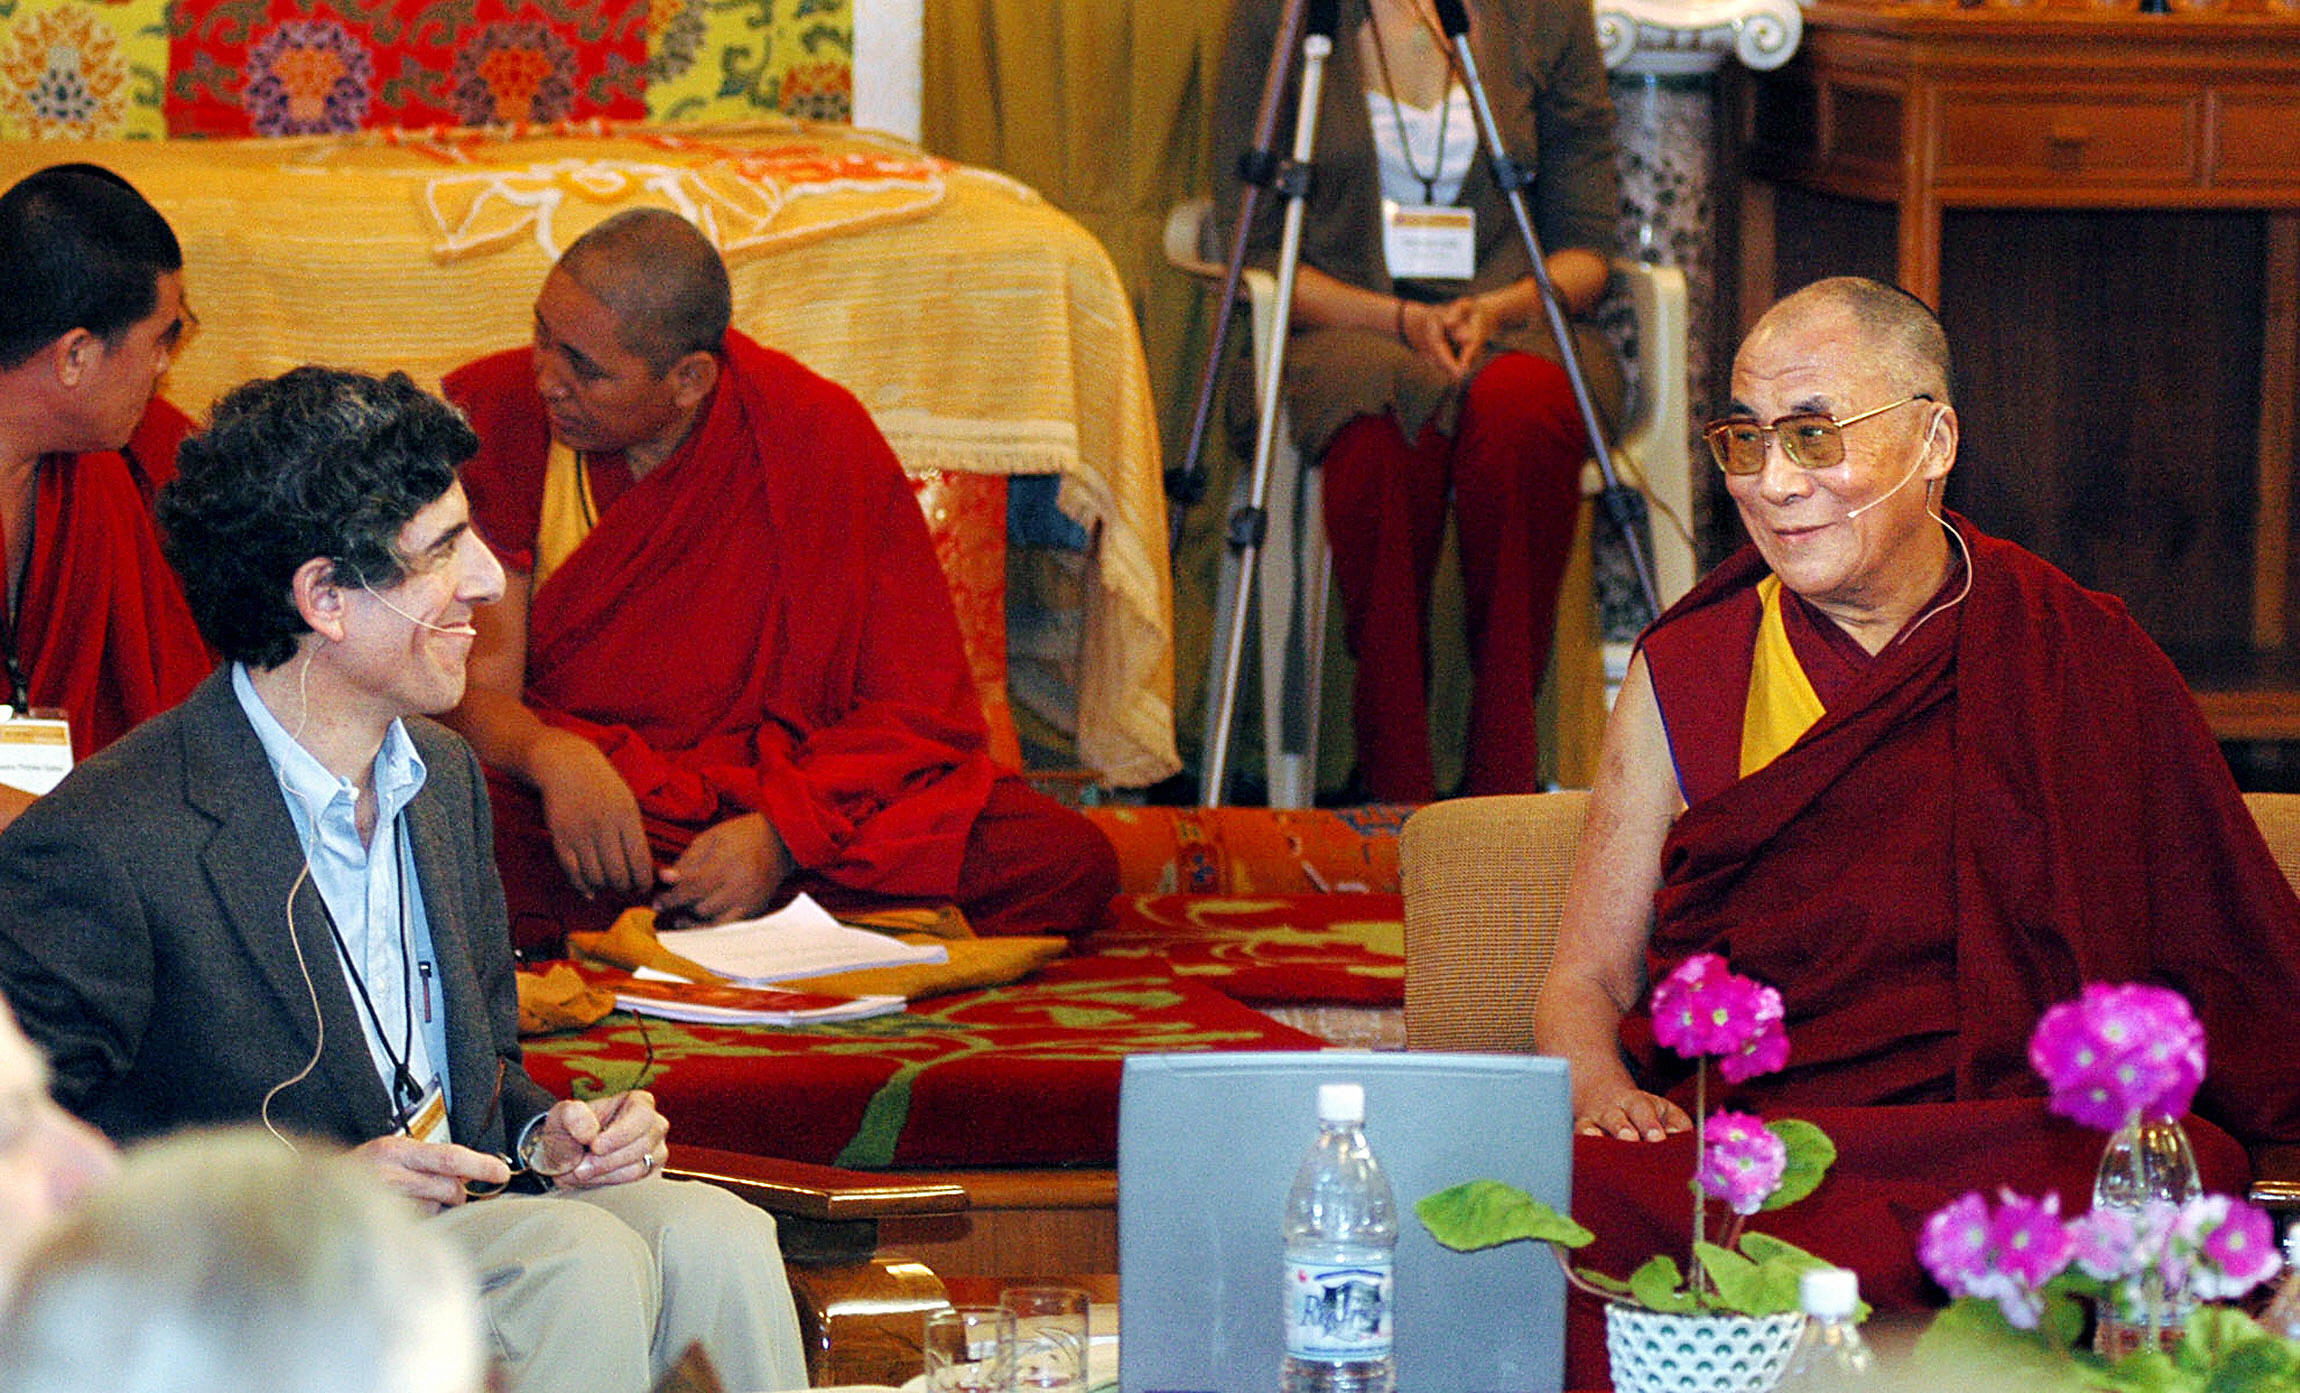 The Dalai Lama (R) smiles at Dr. Richard